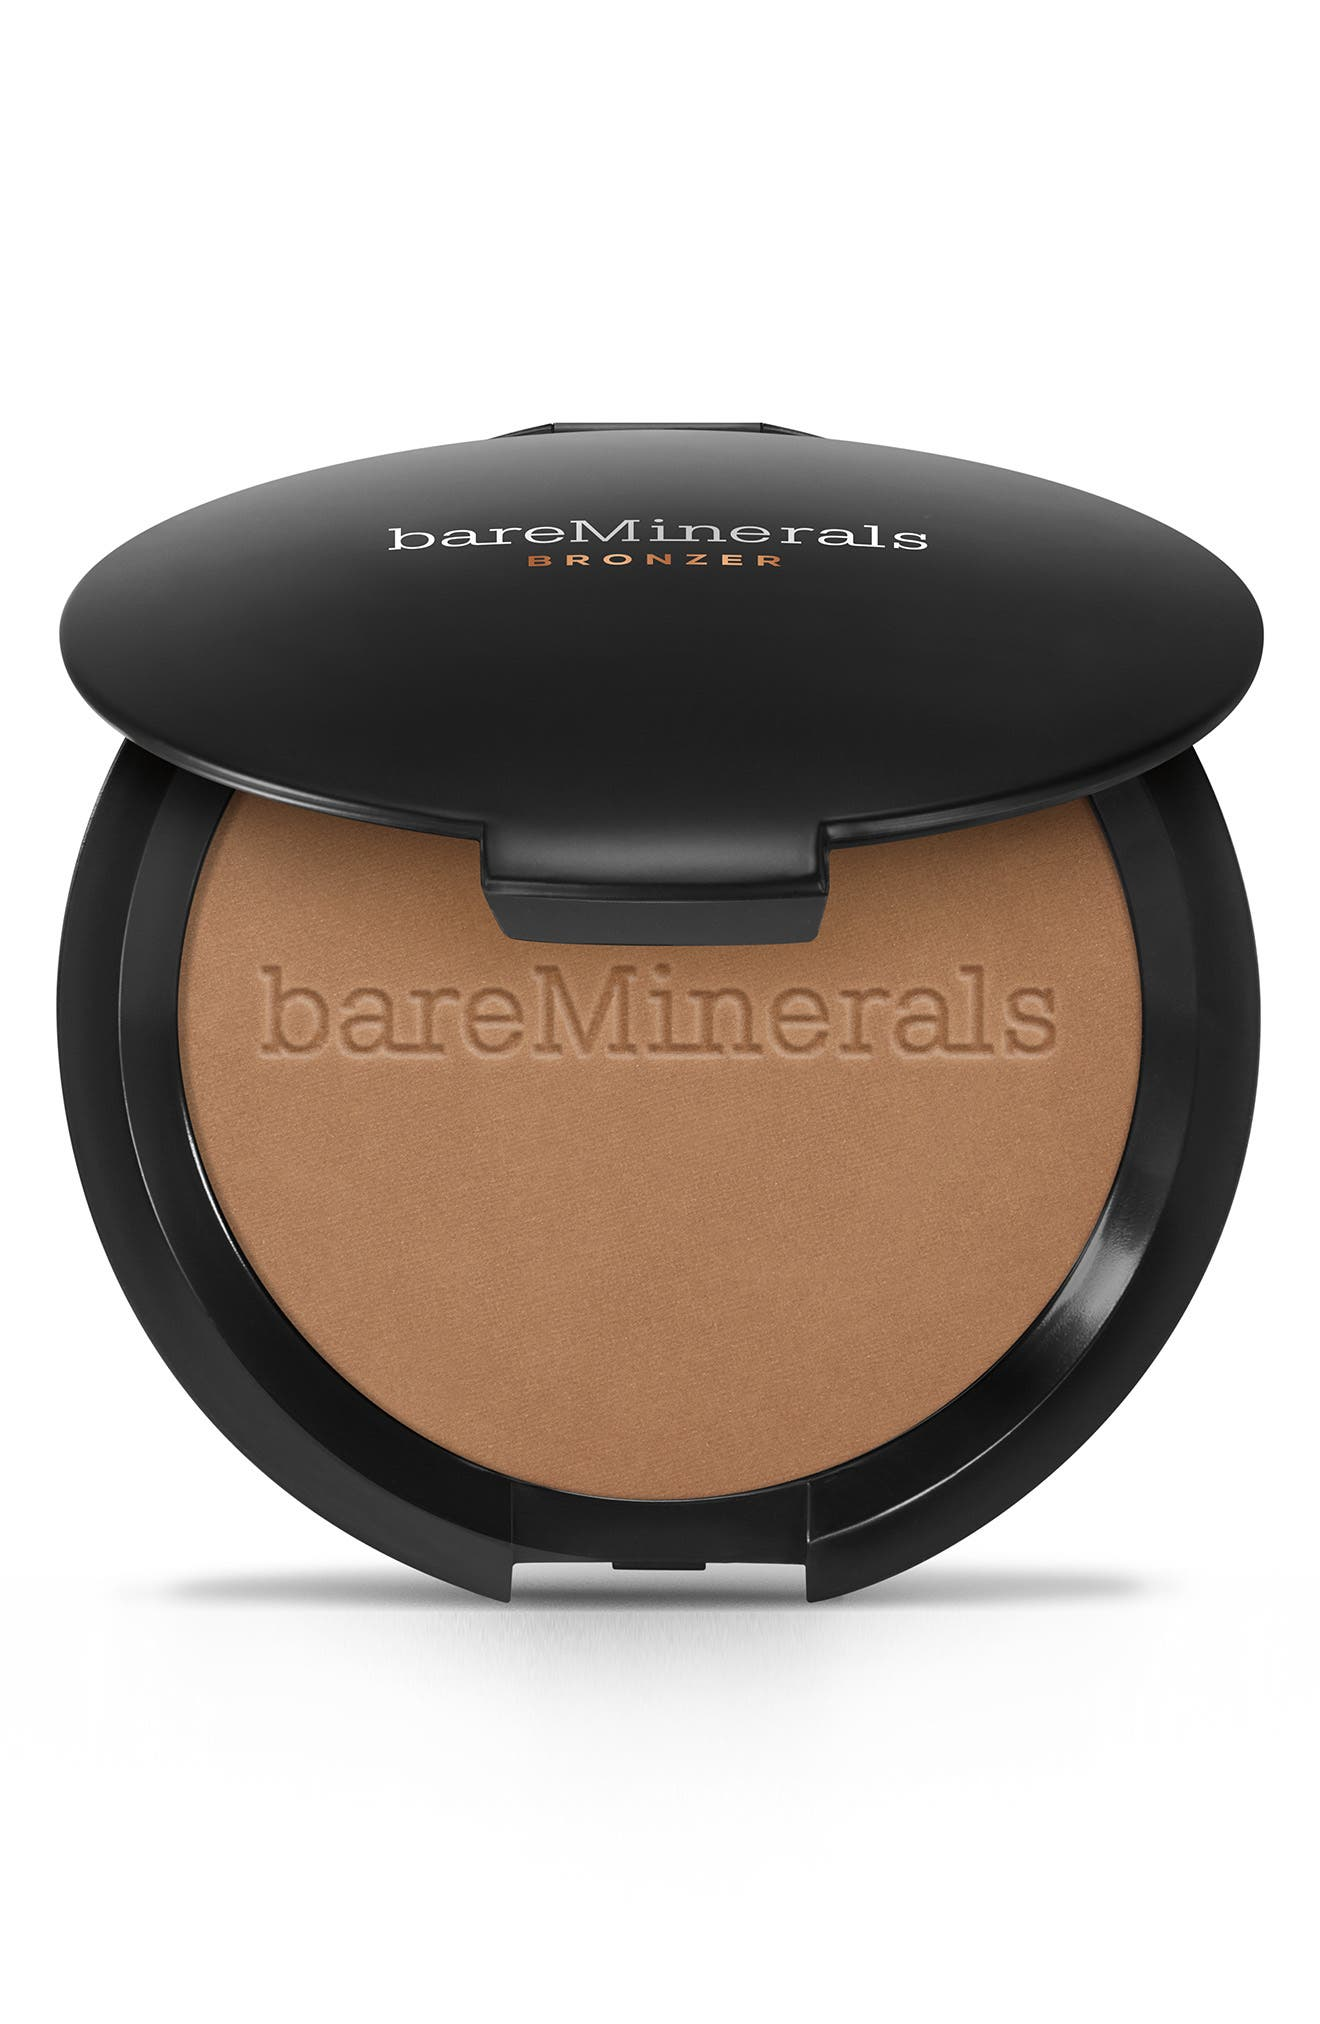 What it is: A mineral-based matte powder bronzer that gives an instant summer glow, blurs the look of pores and builds a sun-kissed look over time. What it does: The clean, talc-free formula provides buildable color that leaves a natural-looking warmth that\\\'s never orange or overdone. It blurs the appearance of pores and imperfections for a photo-ready finish. Infused with Gradual Glow Complex for a lasting sun-kissed look, even without